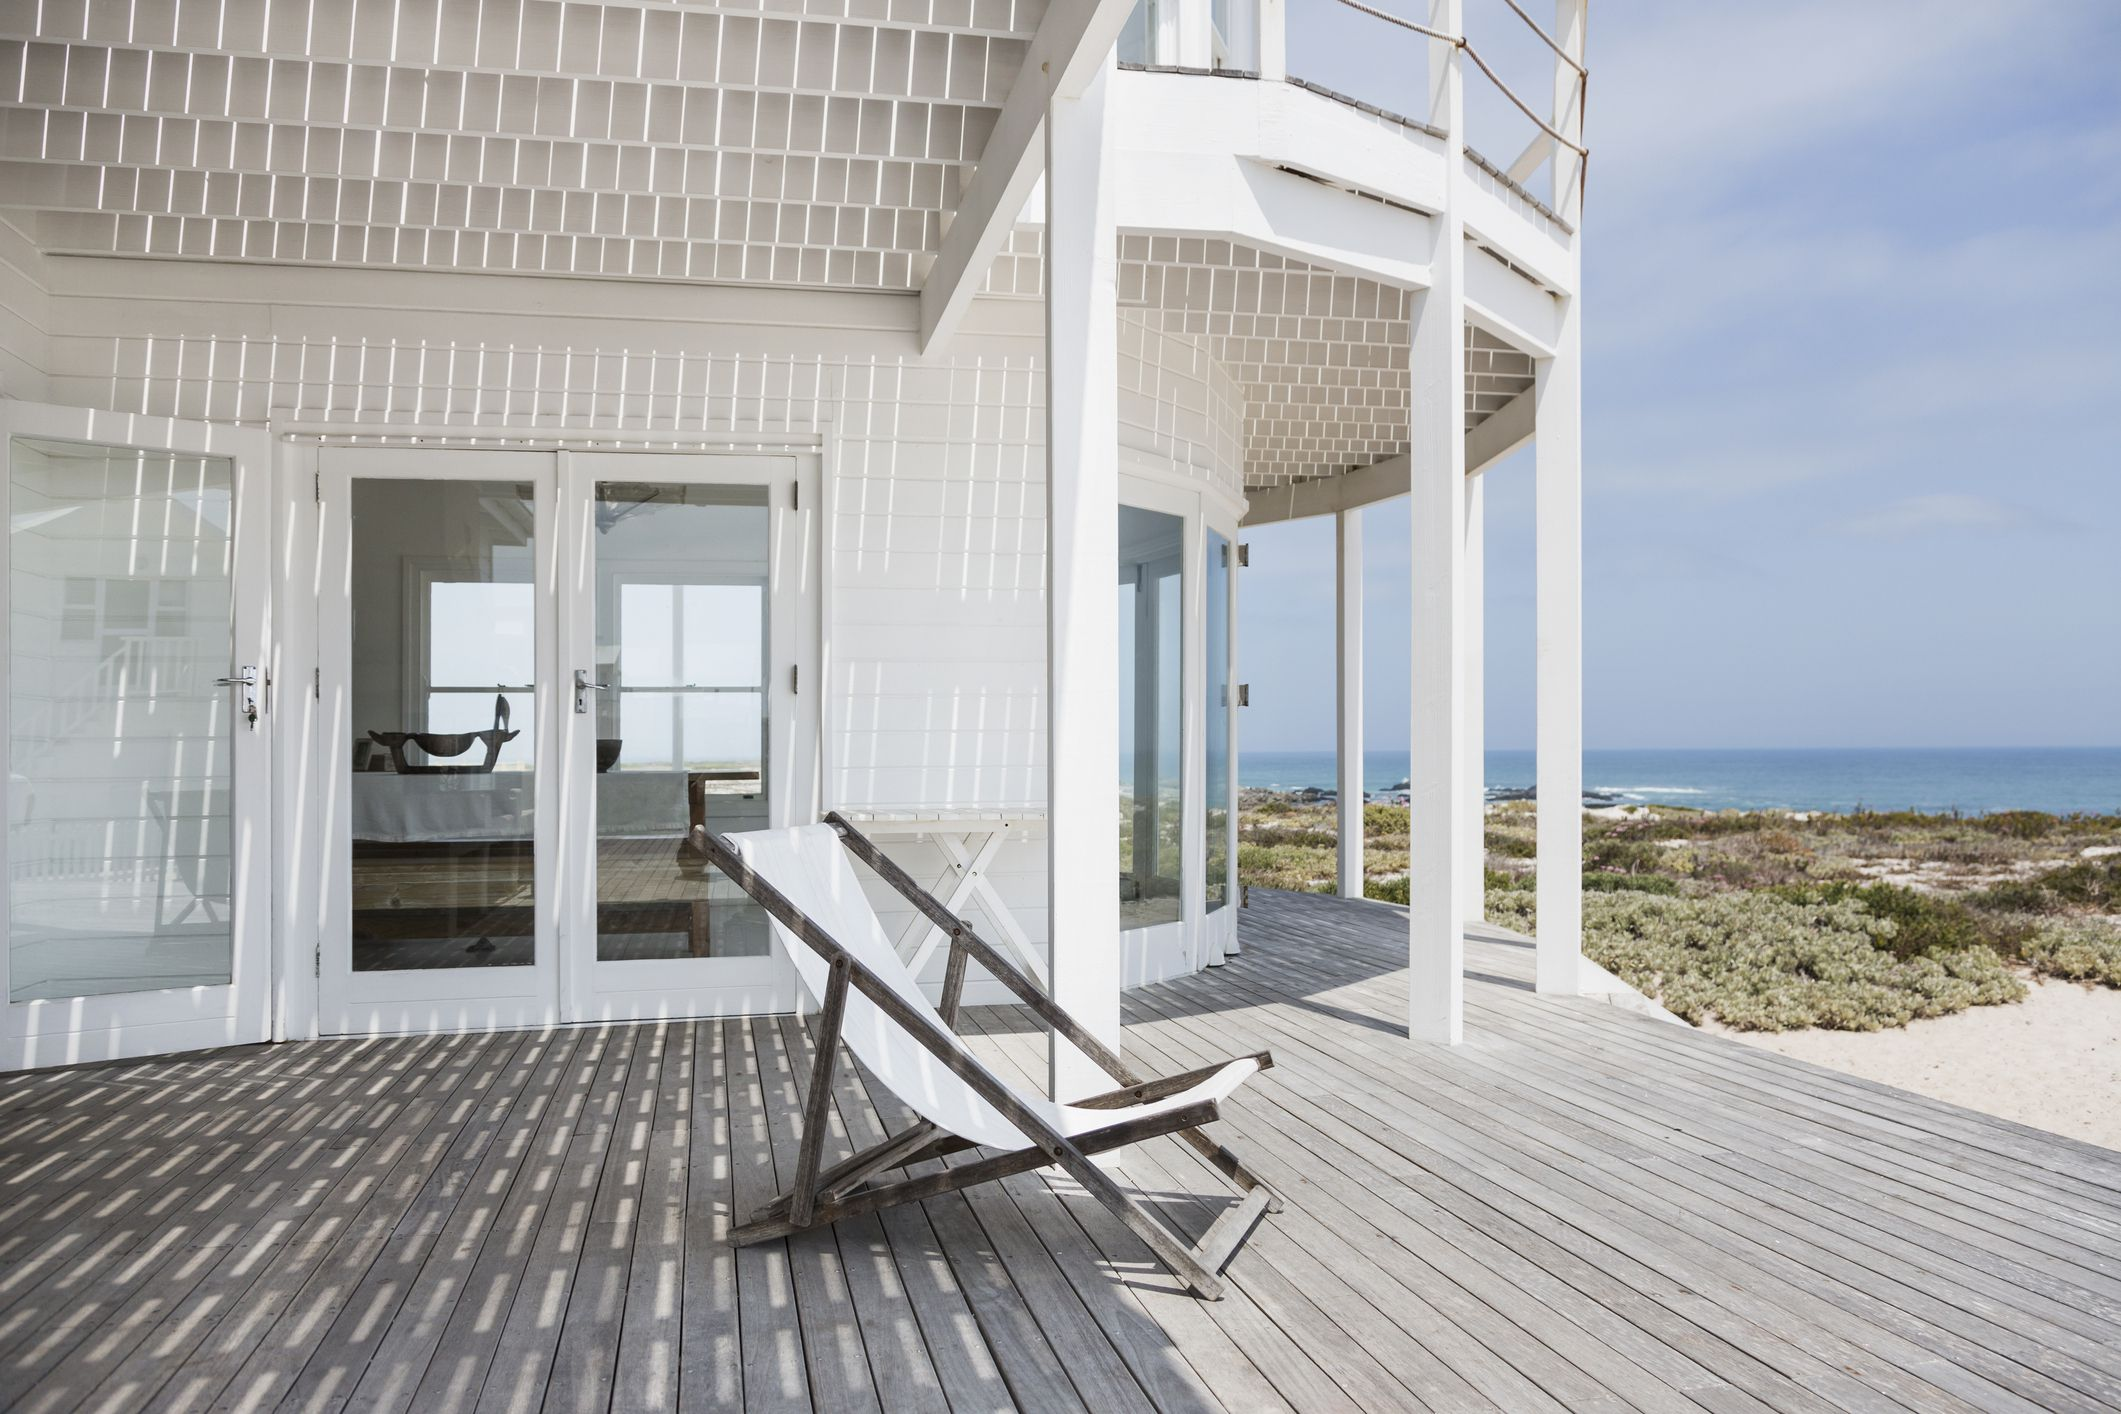 How To Install Wood Deck Boards